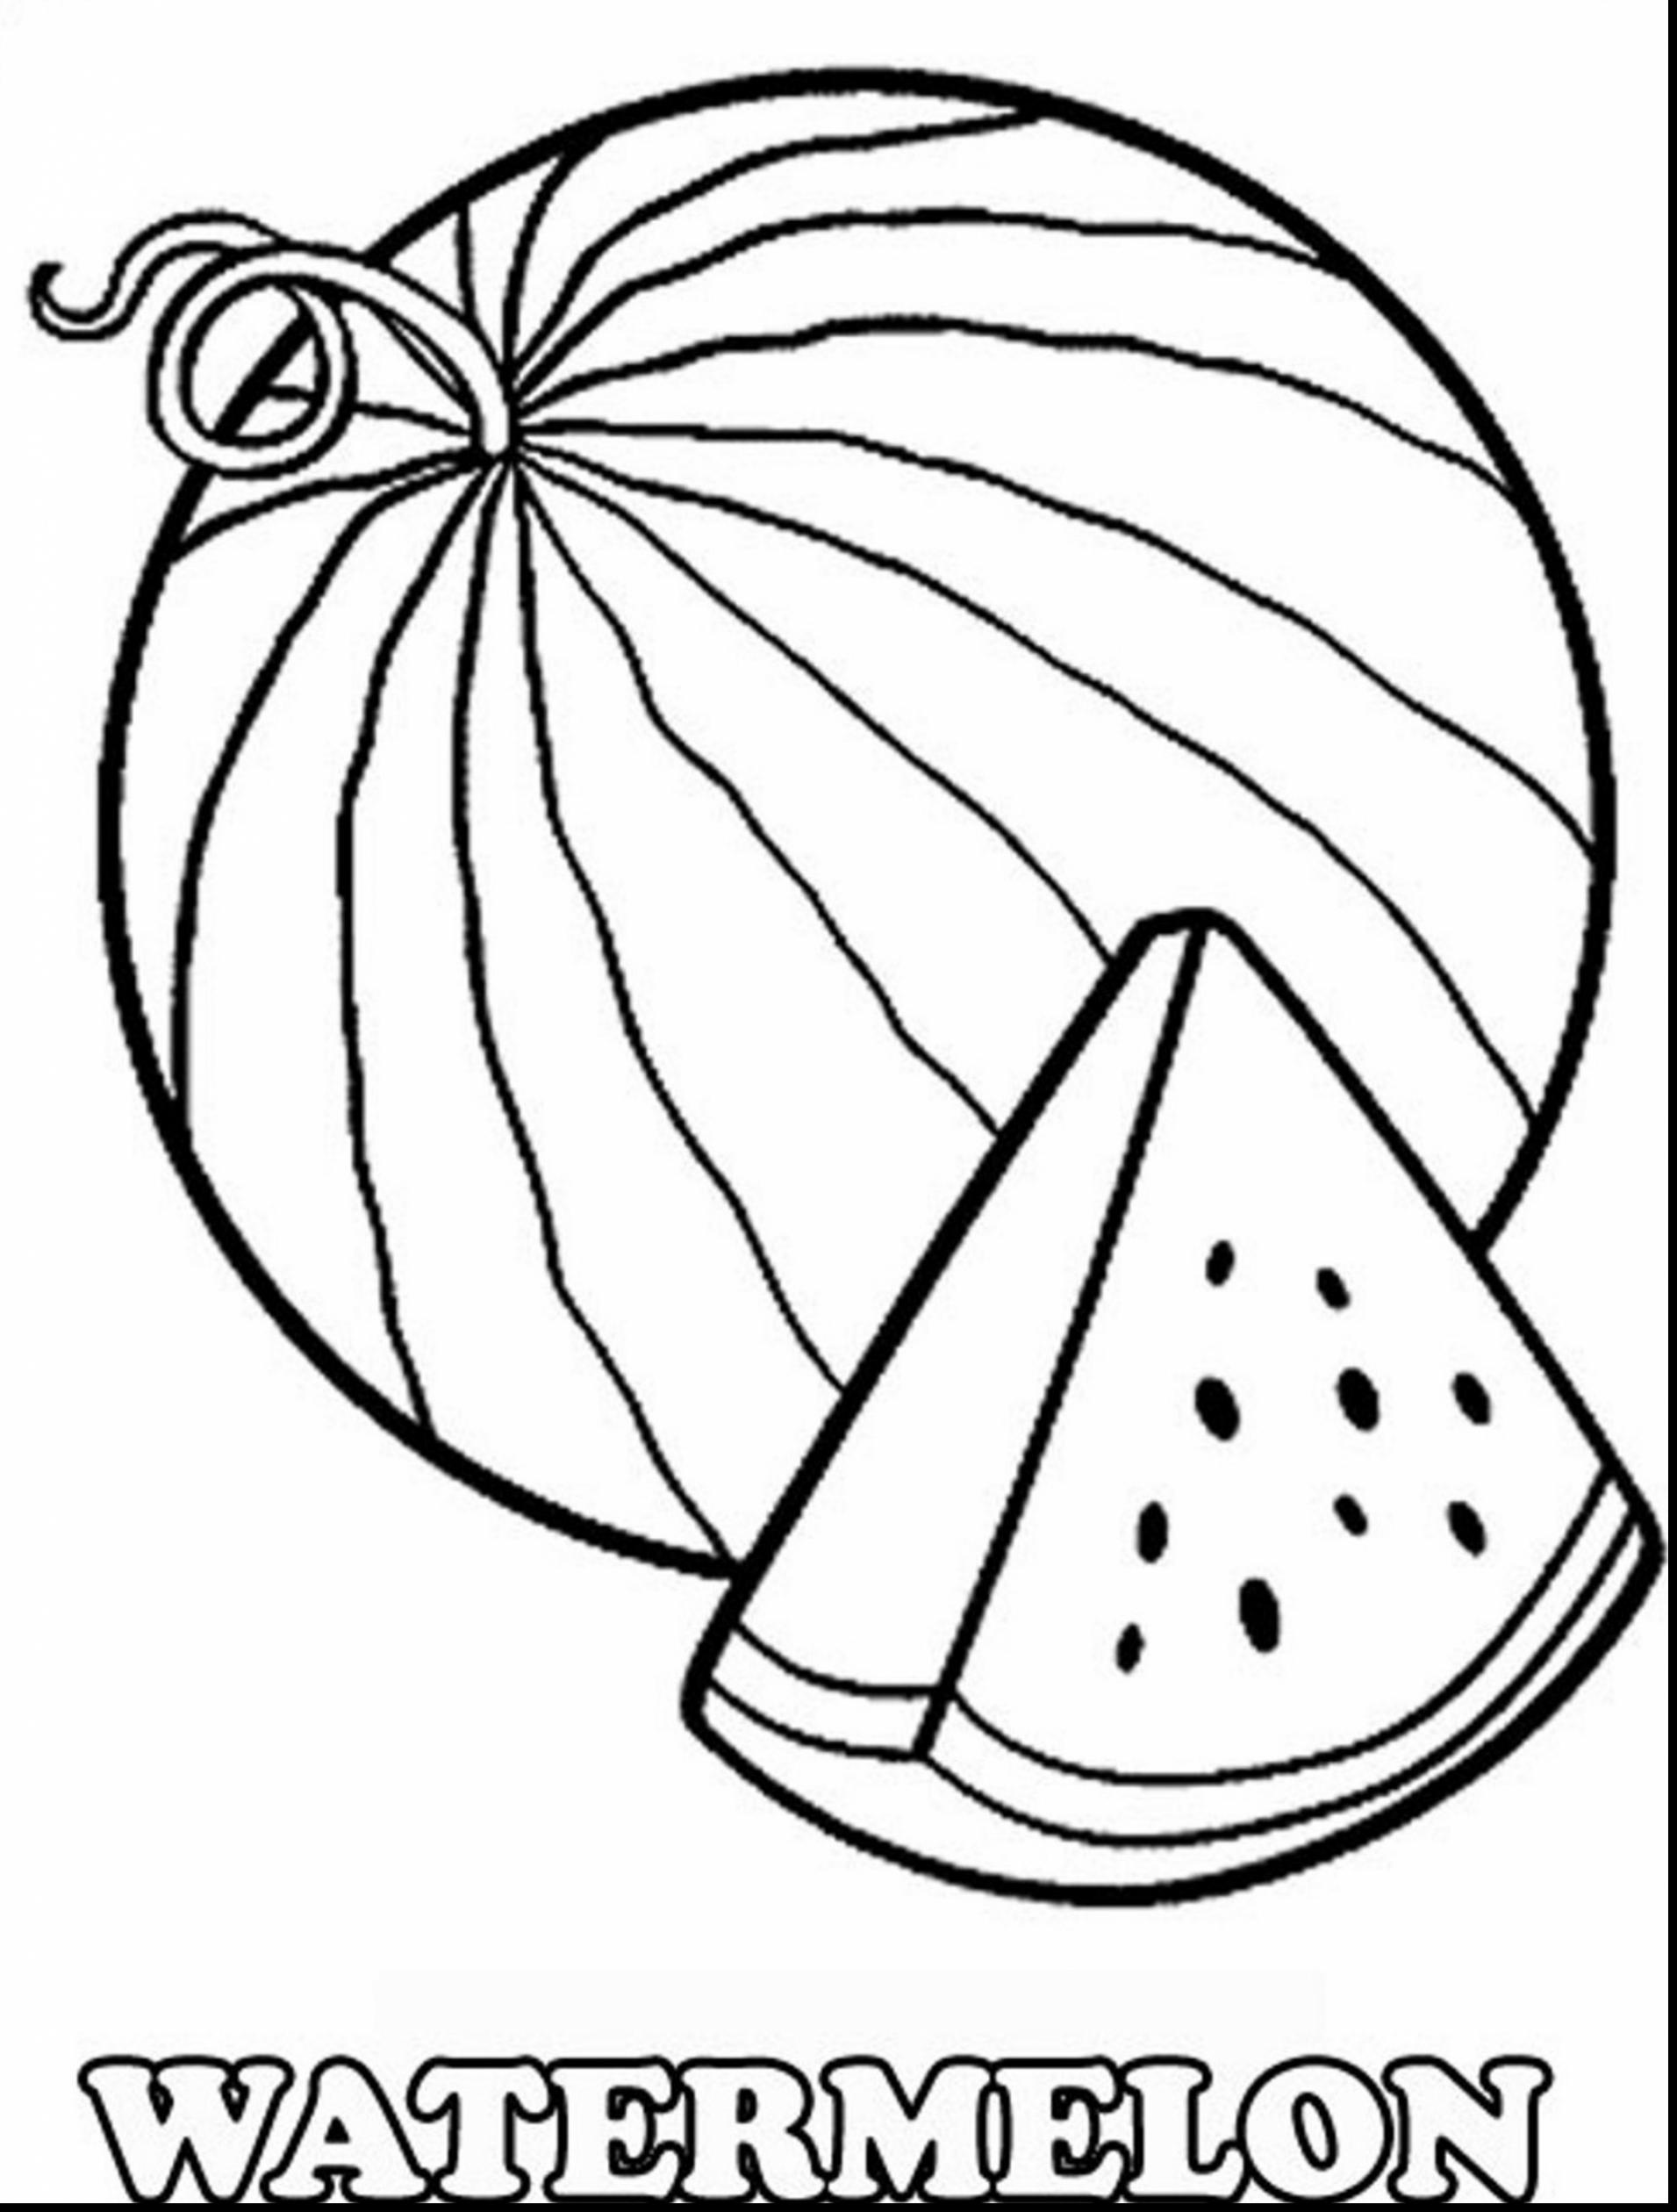 Extraordinary watermelon colorings coloring pages to and print.